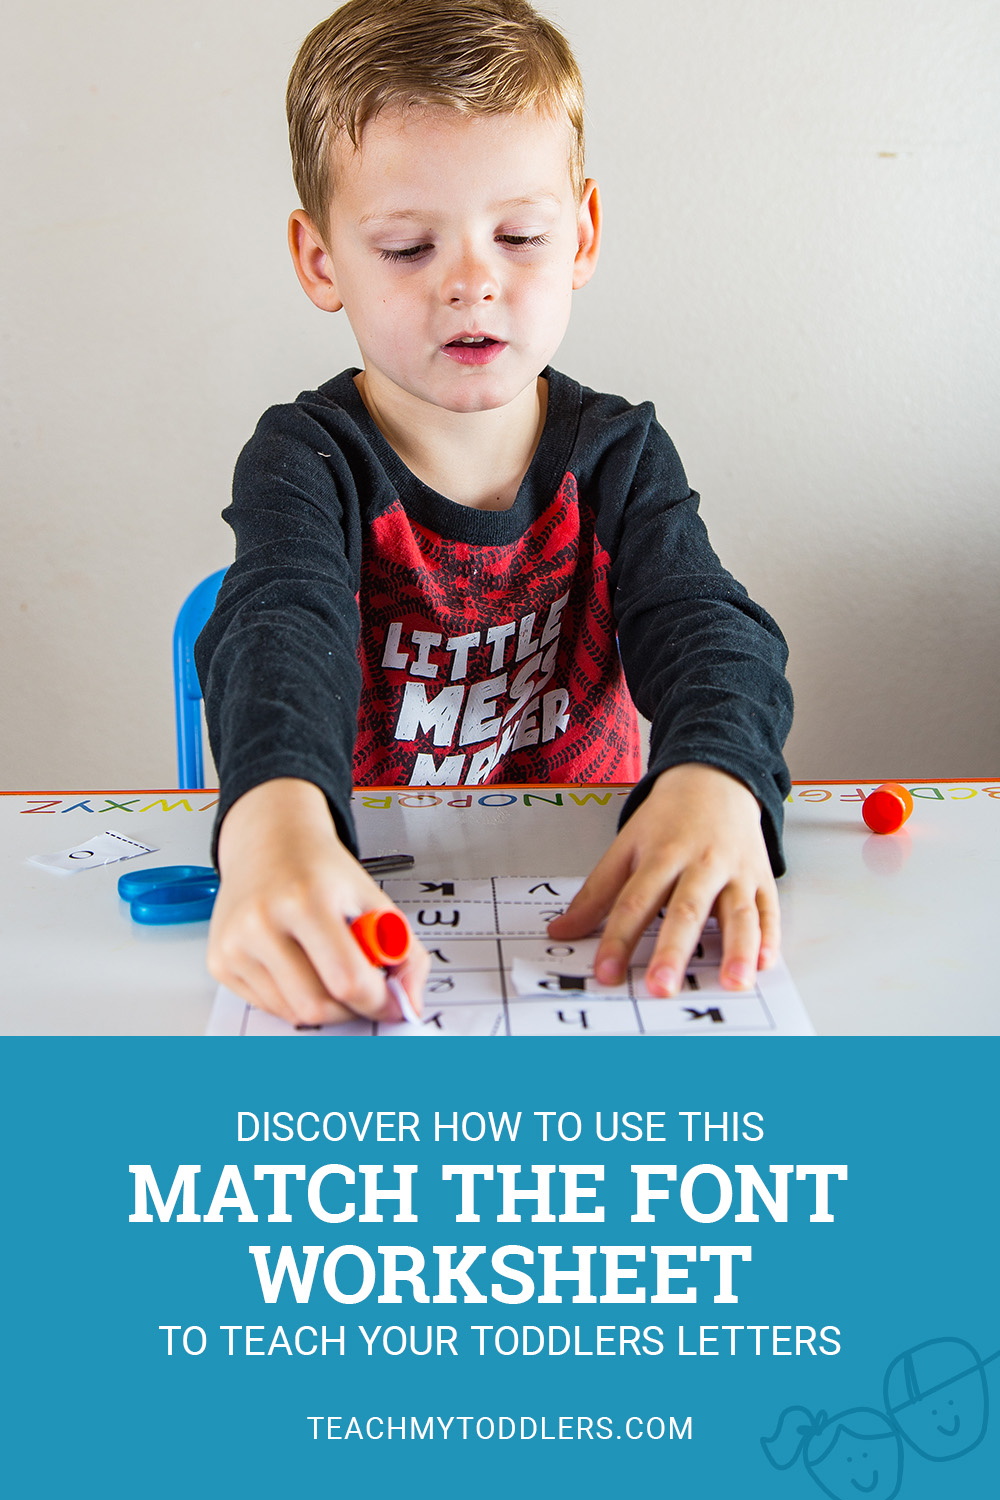 Discover how to use this match the font worksheet to teach your toddlers letters